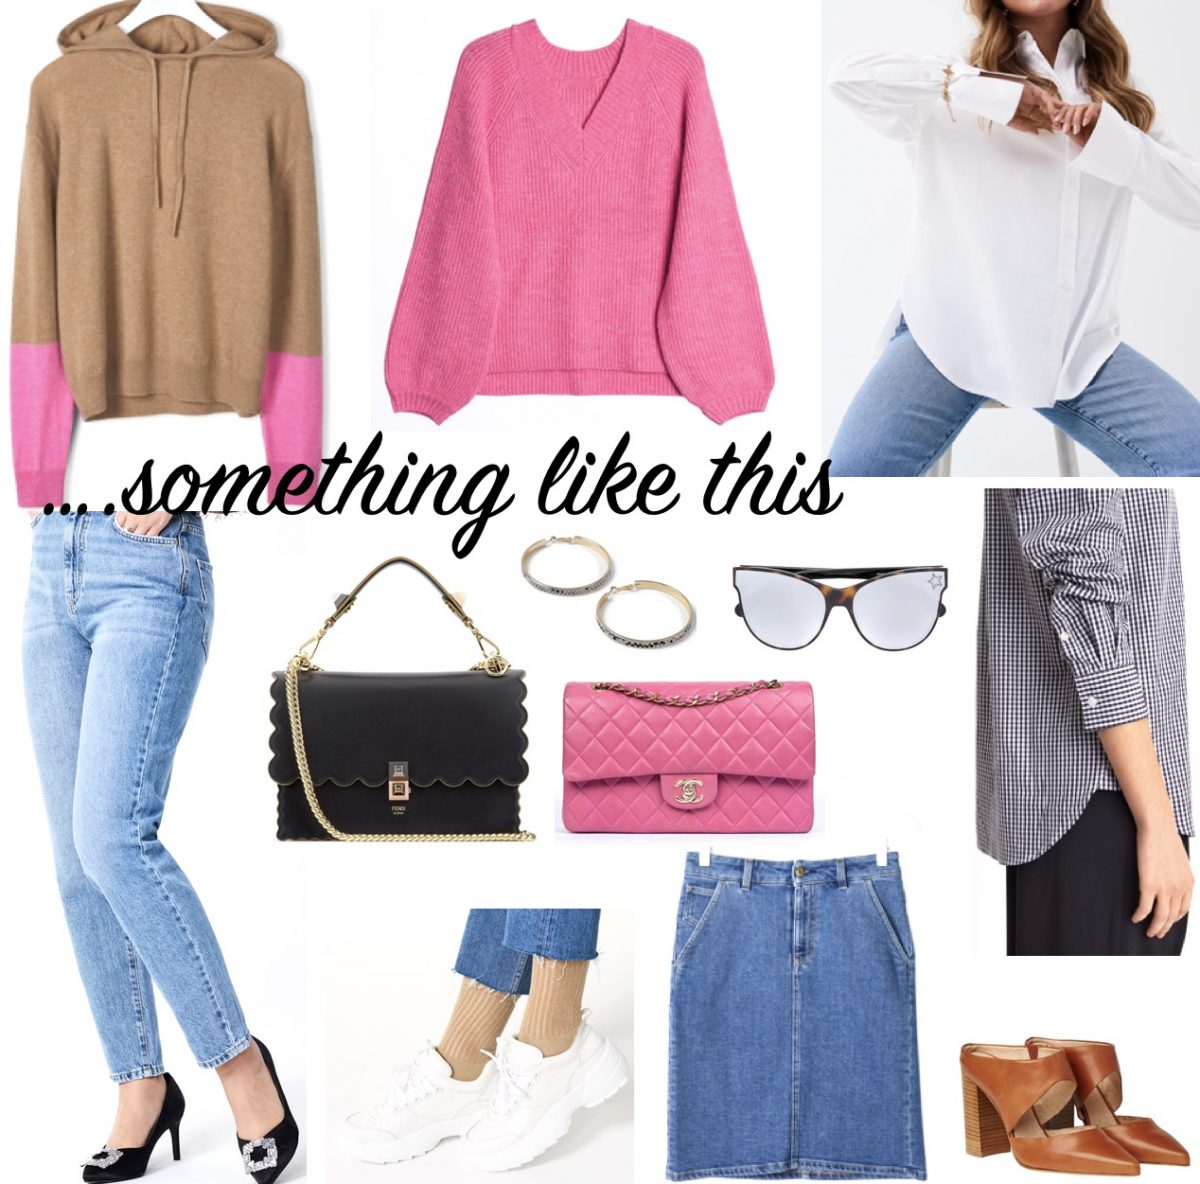 Spring fashion with jeans